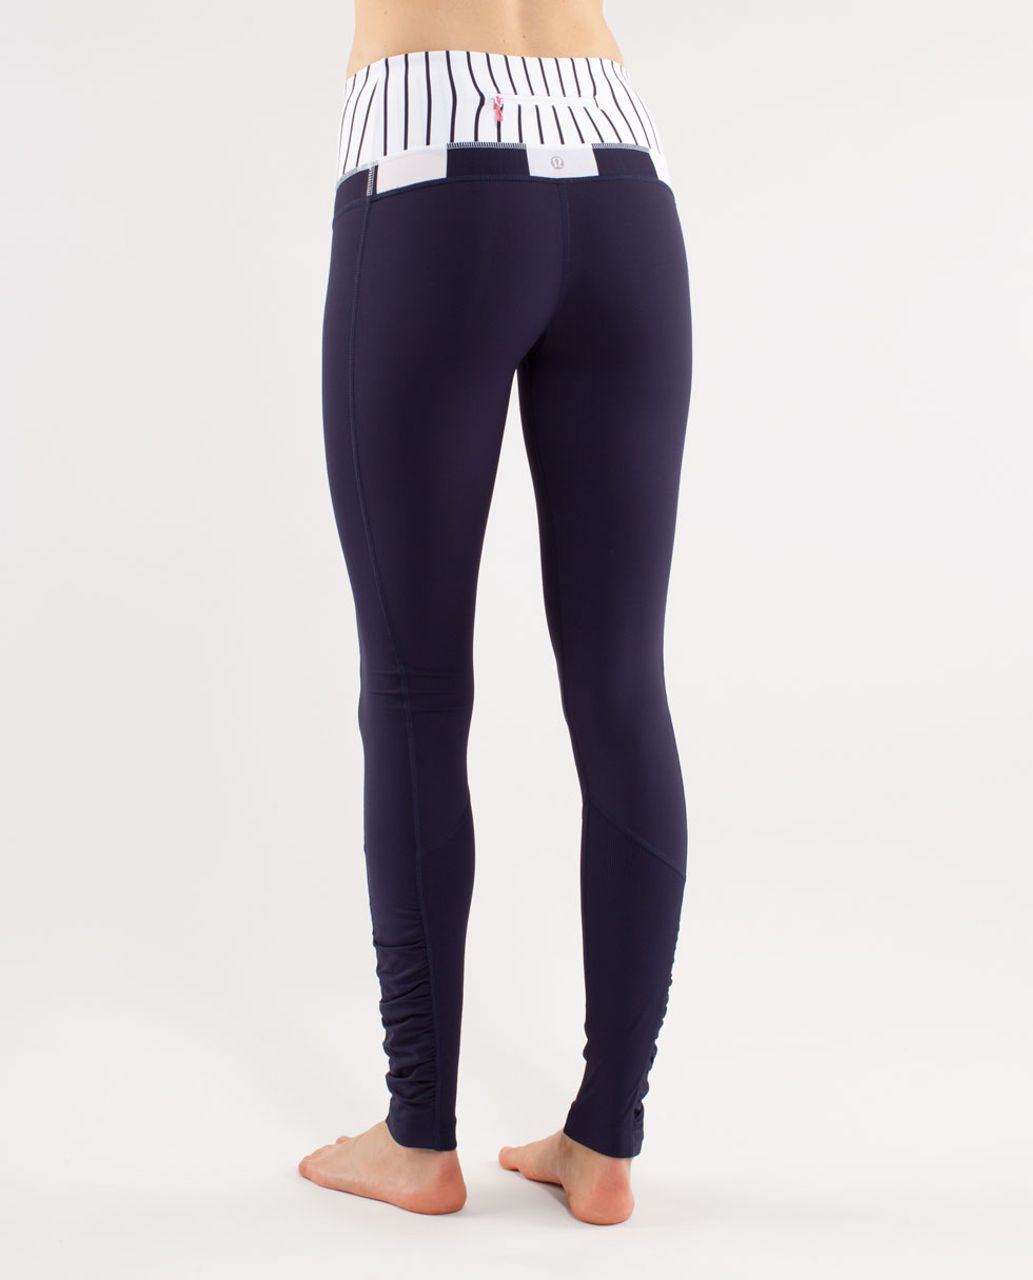 Lululemon Run:  Spirit Tight II - Deep Indigo /  Wide Bold Stripe White Deep Indigo /  Quiet Stripe White Deep Indigo